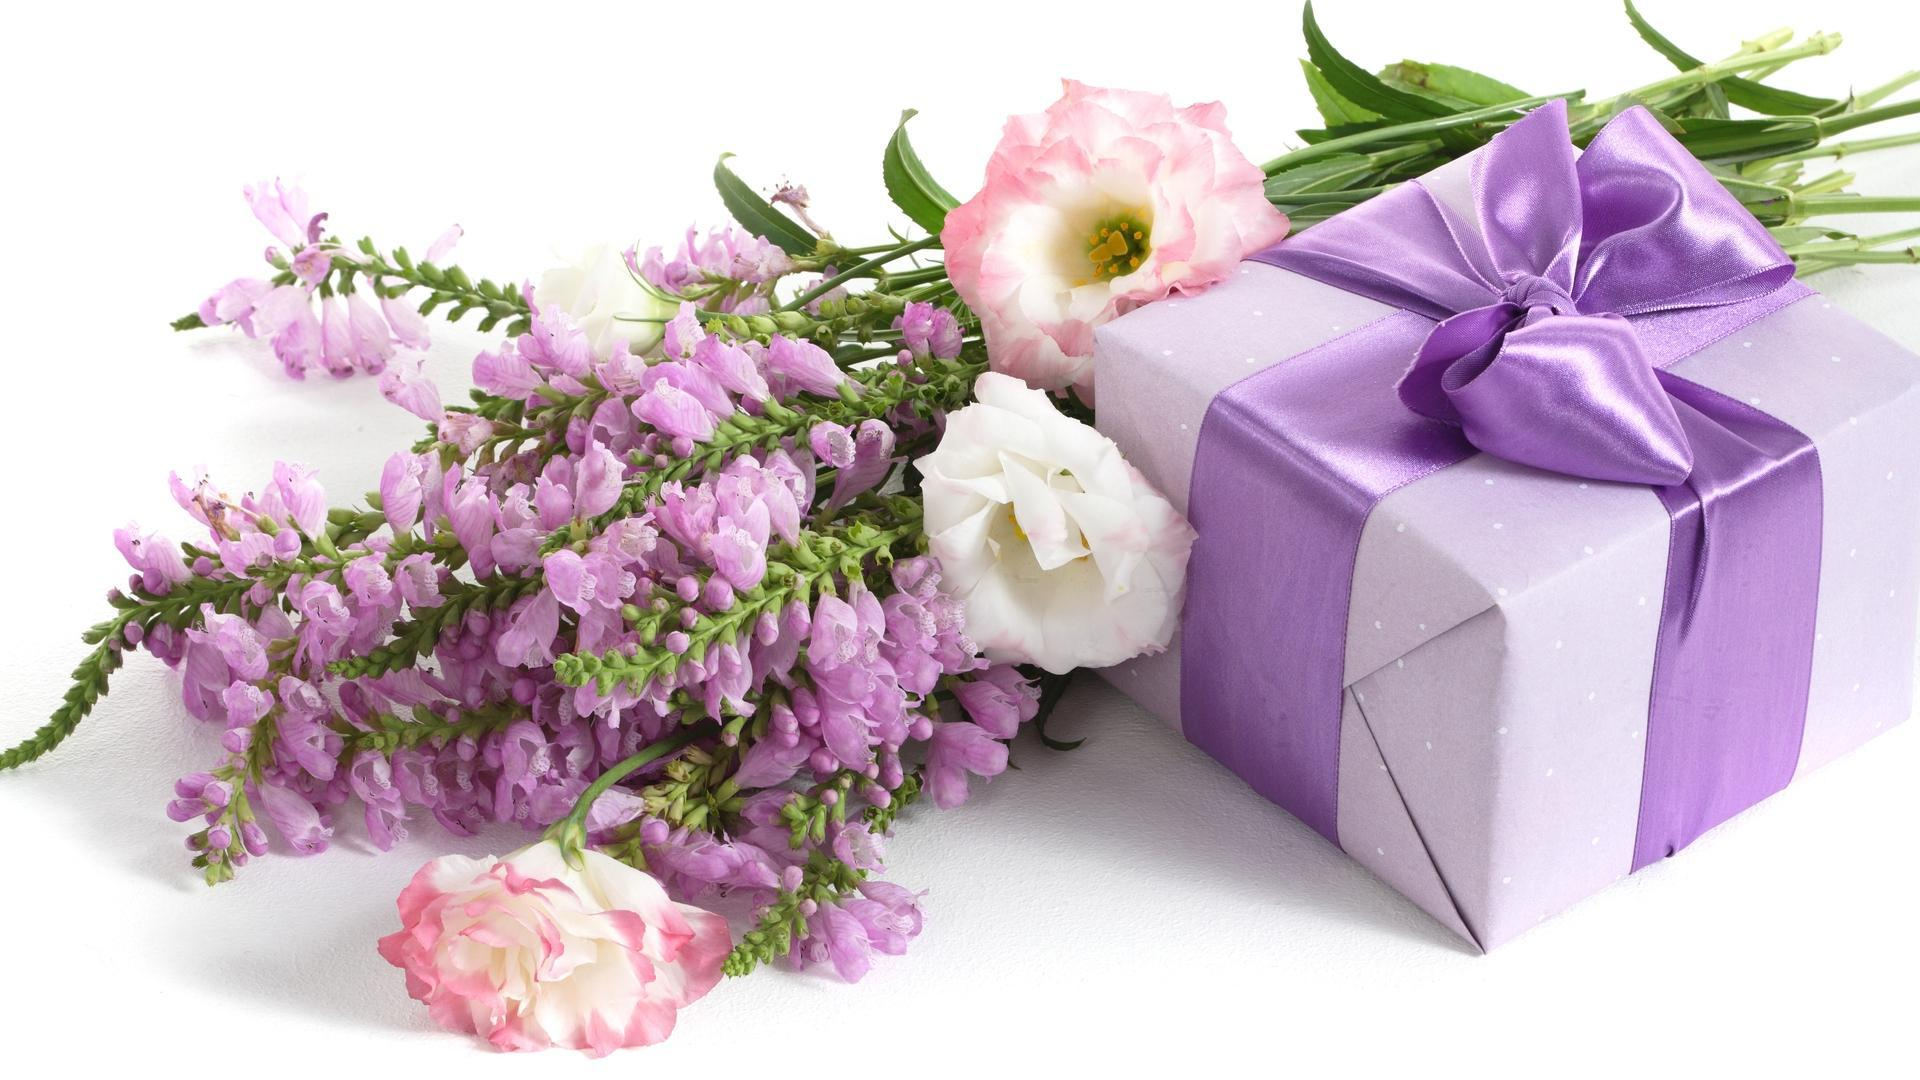 Holidays___International_Womens_Day_Bouquet_of_flowers_and_a_gift_for_a_girl_on_March_8_057125_.jpg